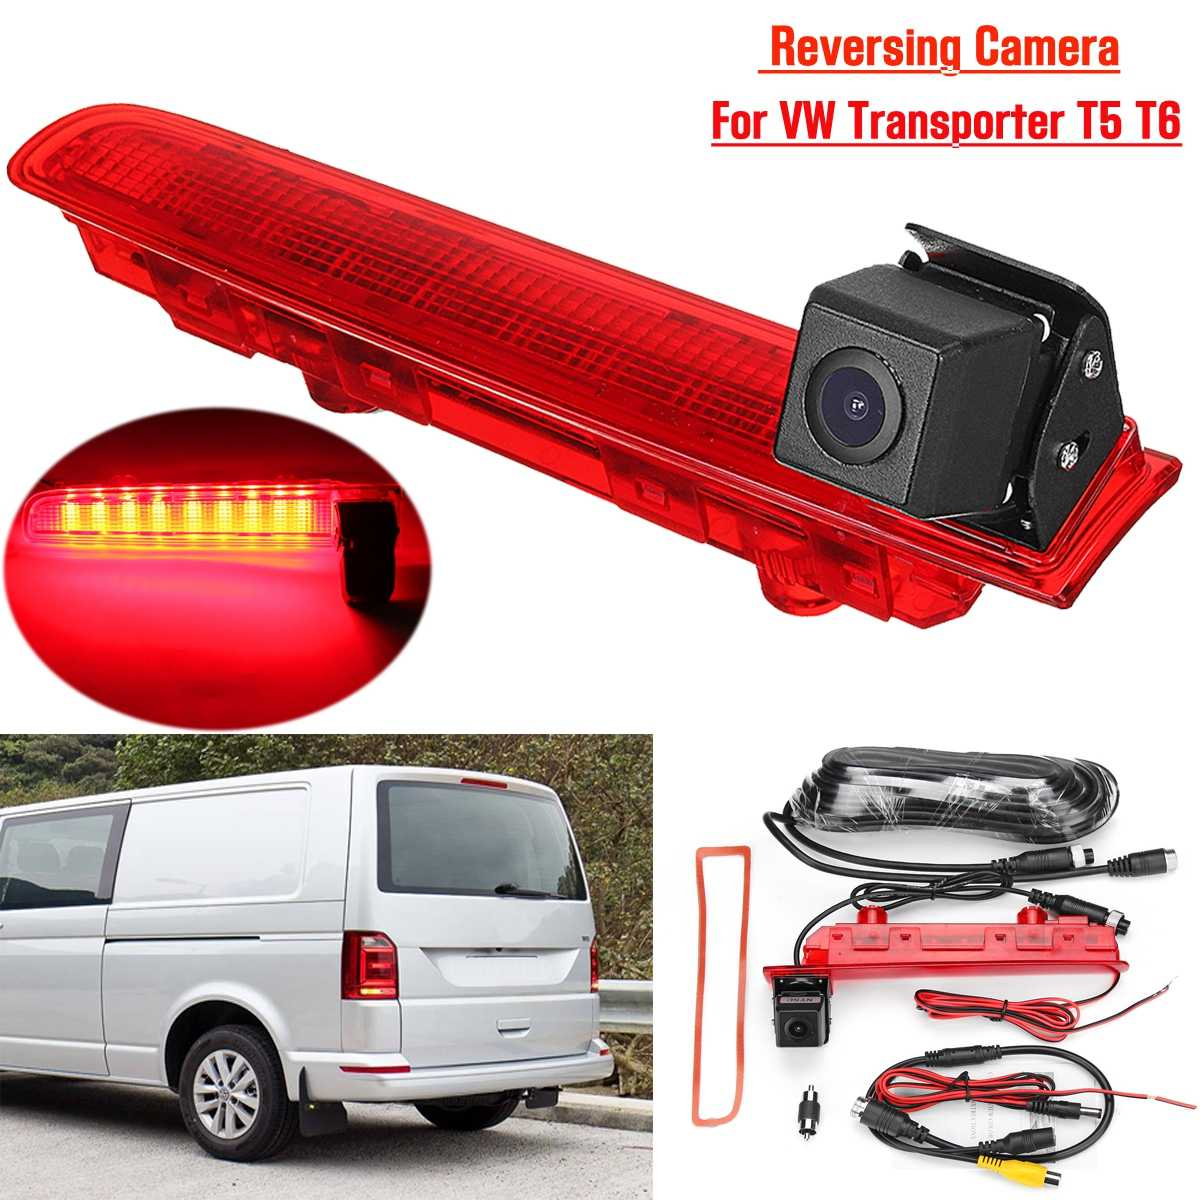 170° Car Reversing Backup Rear View Camera W/Brake Light For VW Transporter T5 & T6 2010-2019